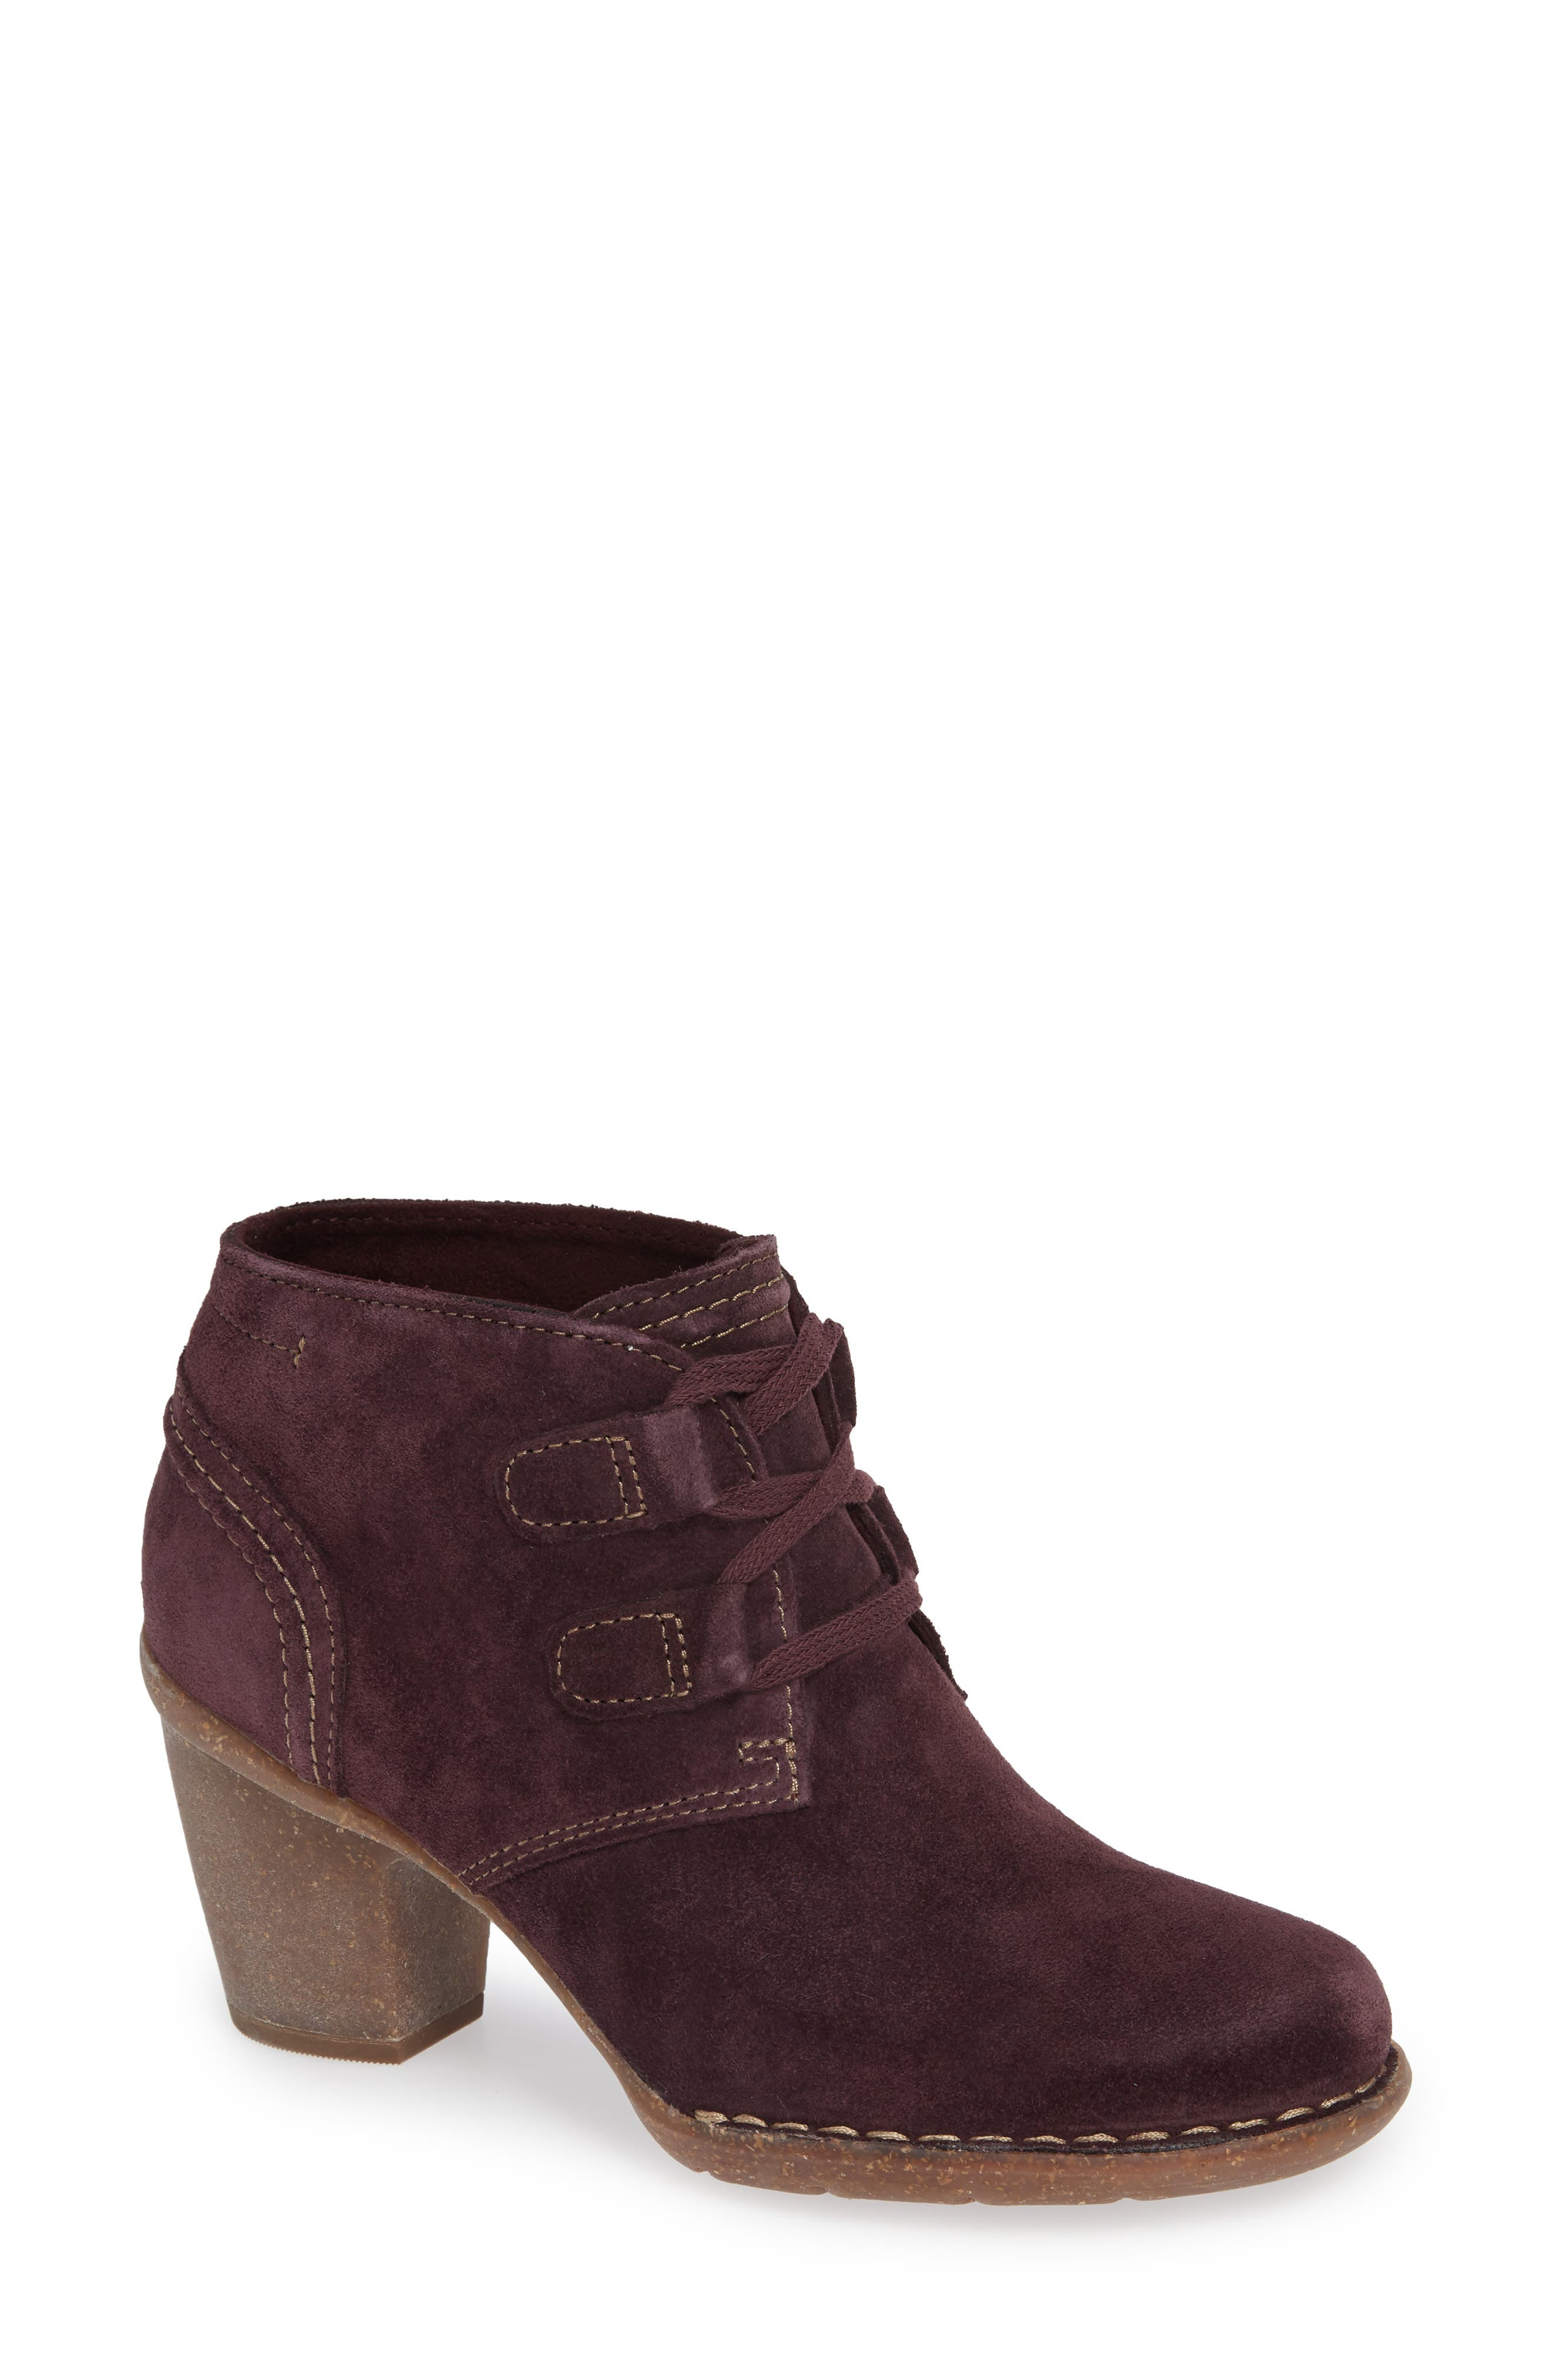 CLARKS<SUP>®</SUP>, Carleta Lyon Ankle Boot, Main thumbnail 1, color, AUBERGINE SUEDE